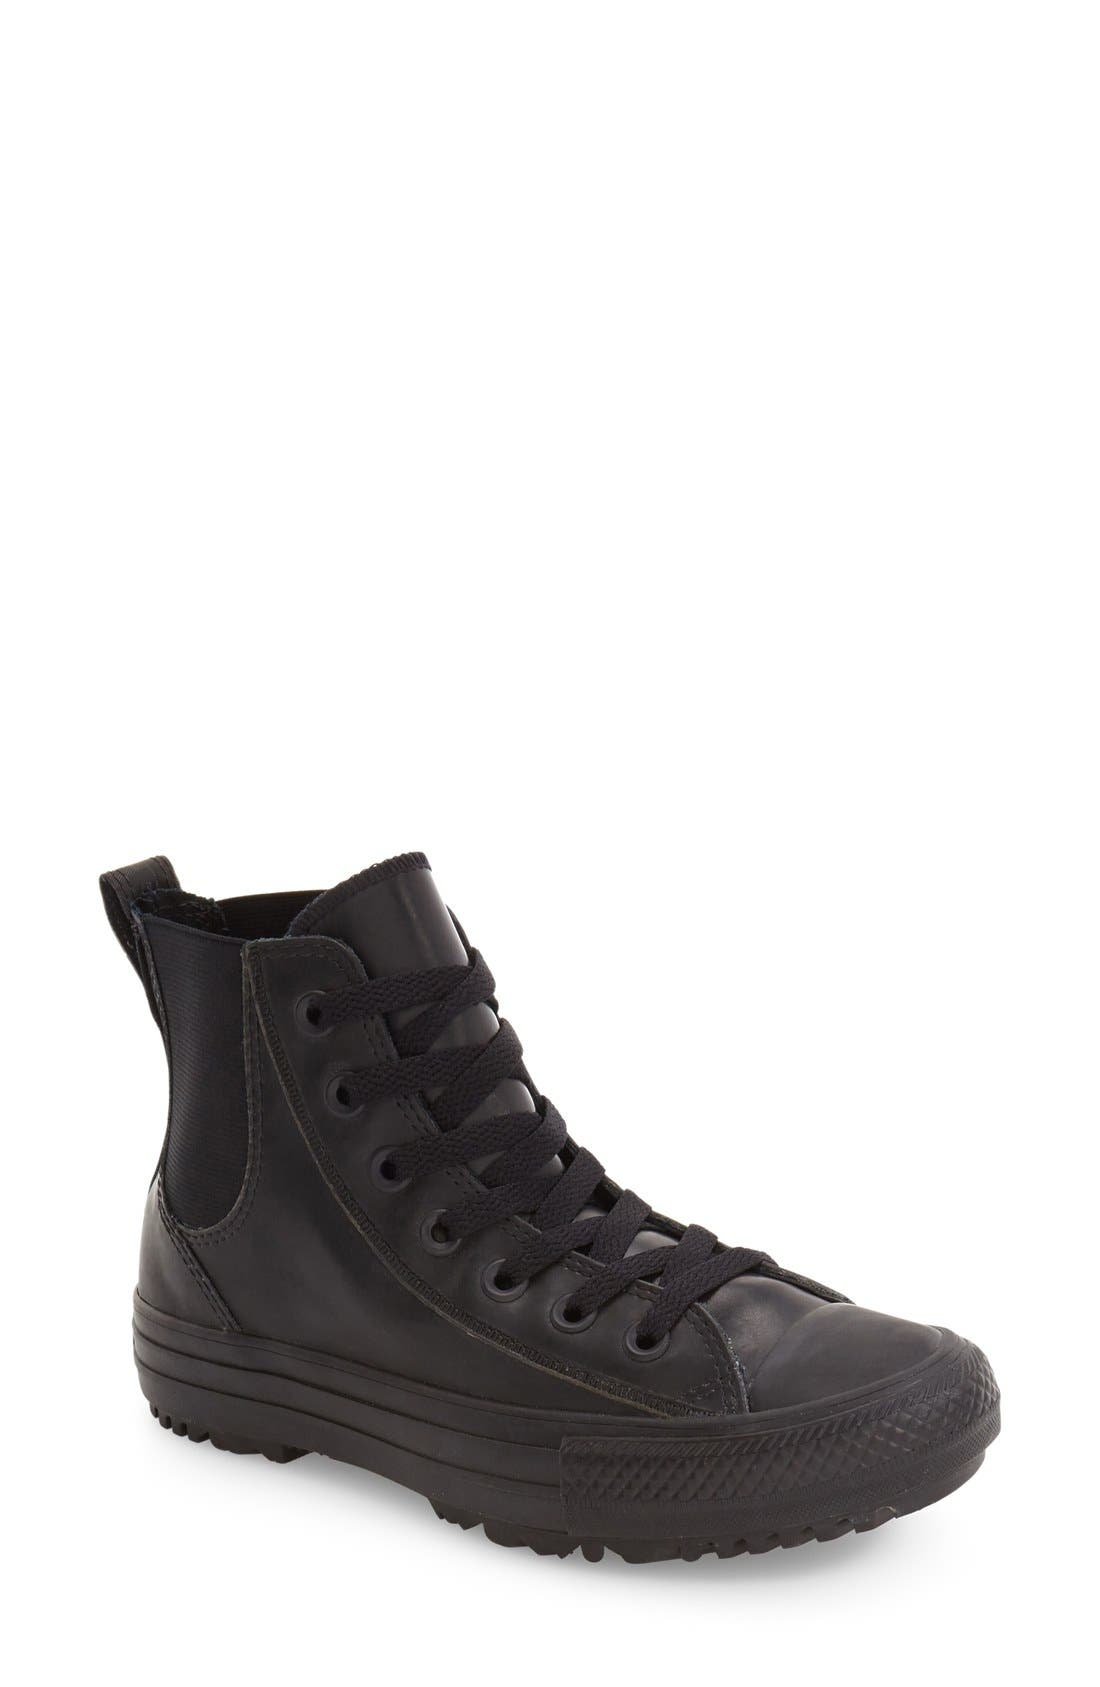 Main Image - Converse Chuck Taylor® All Star® Chelsee Translucent Water Repellent High Top Sneaker (Women)